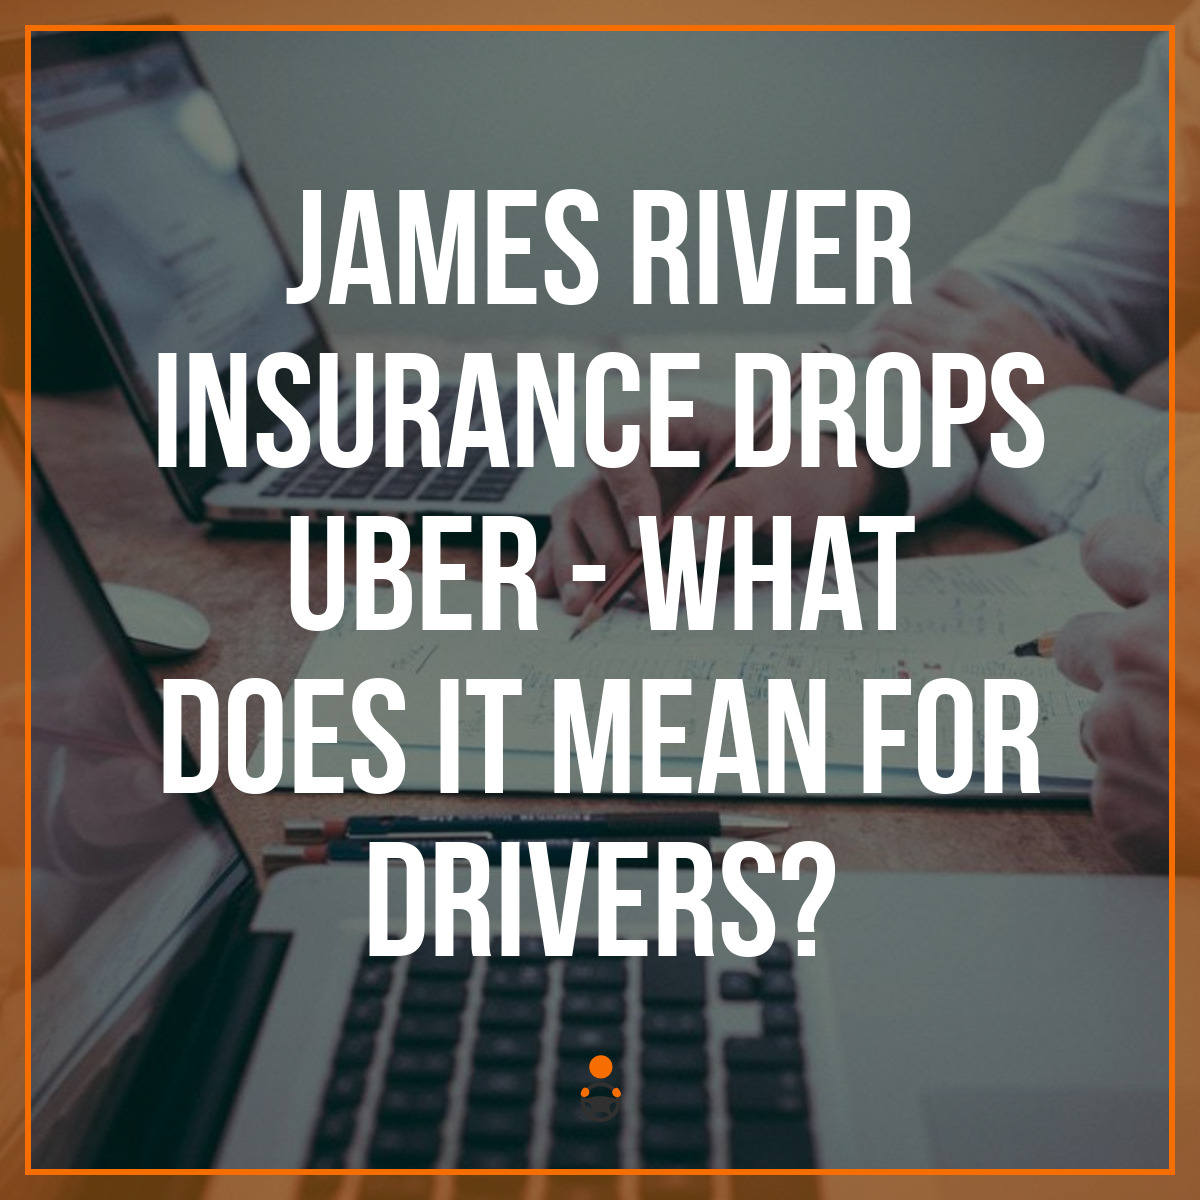 James River Insurance Drops Uber – What Does It Mean for Drivers?